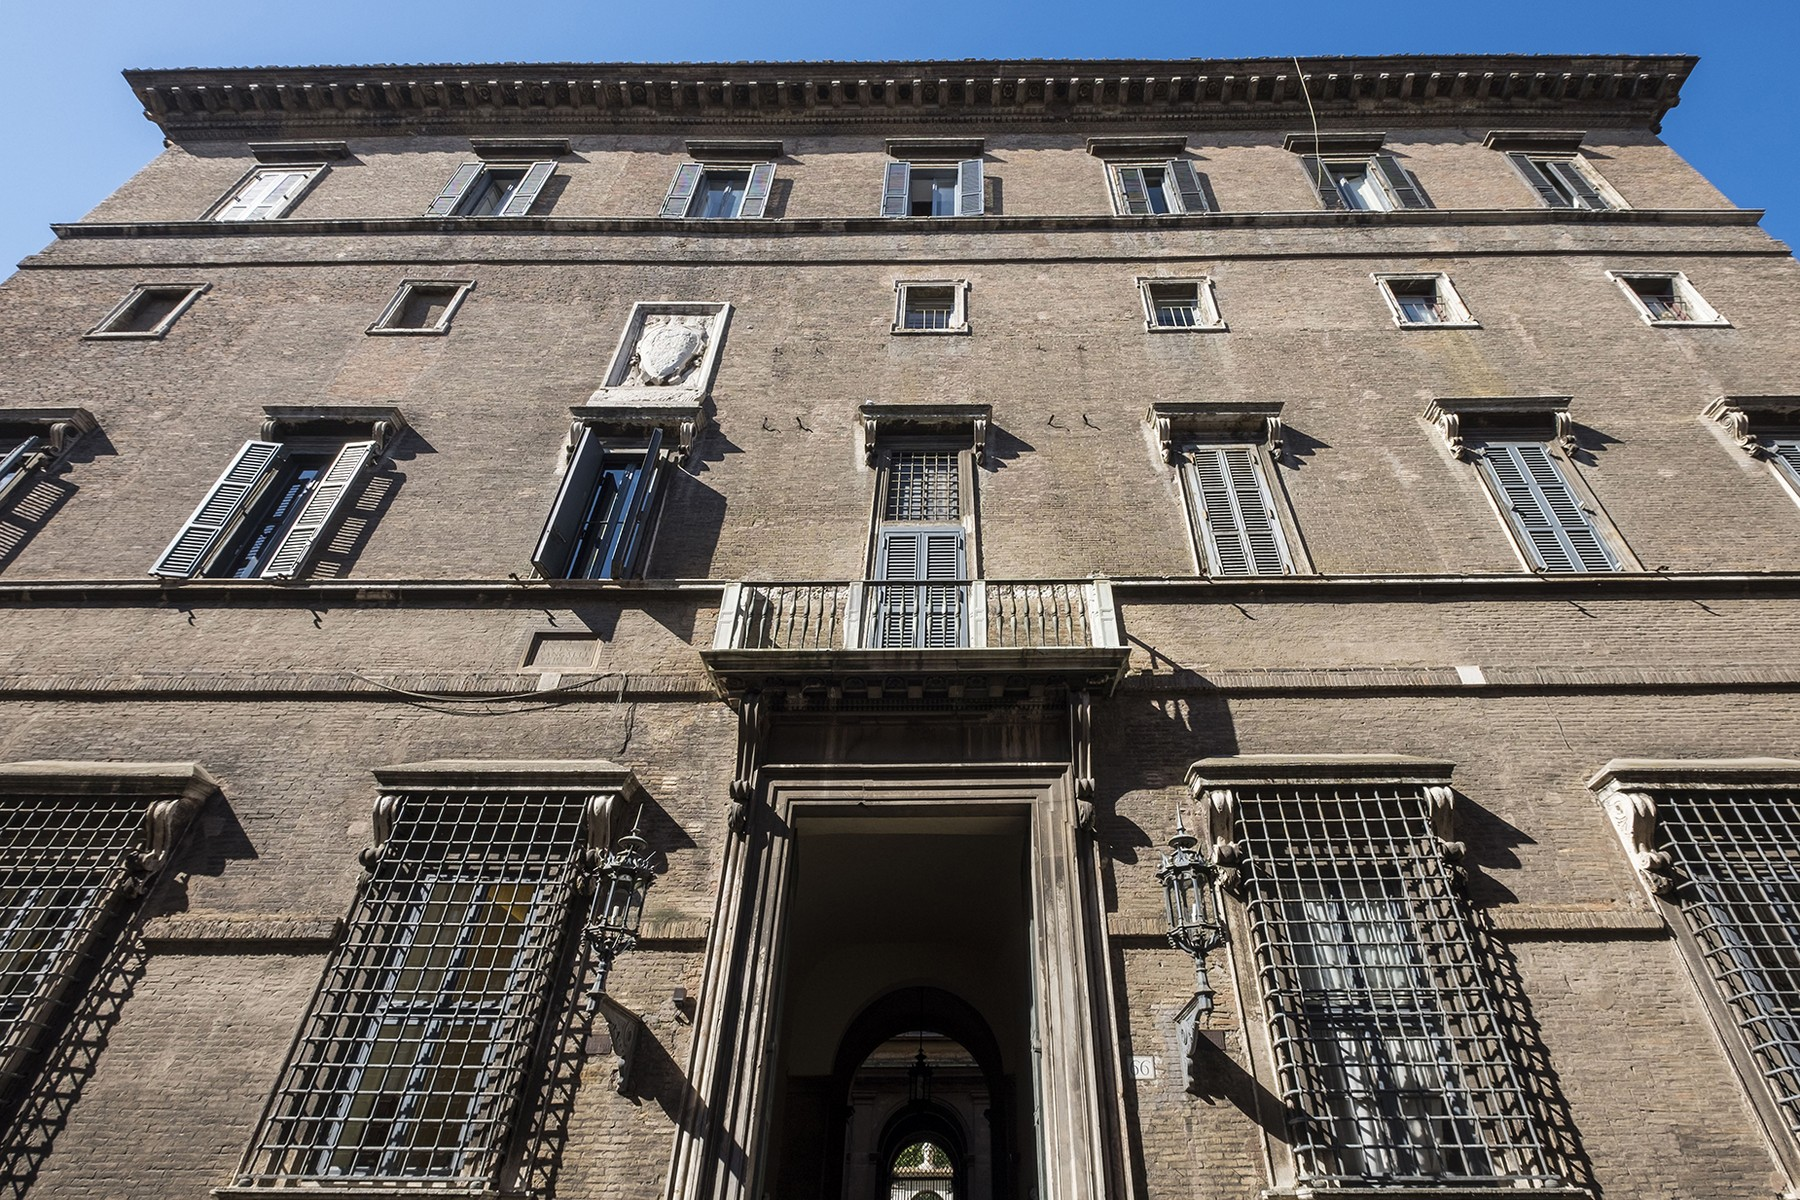 独户住宅 为 销售 在 Palazzo Sacchetti, a pearl of the late Reinassance in the heart of Rome Via Giulia 罗马, 罗马, 00186 意大利